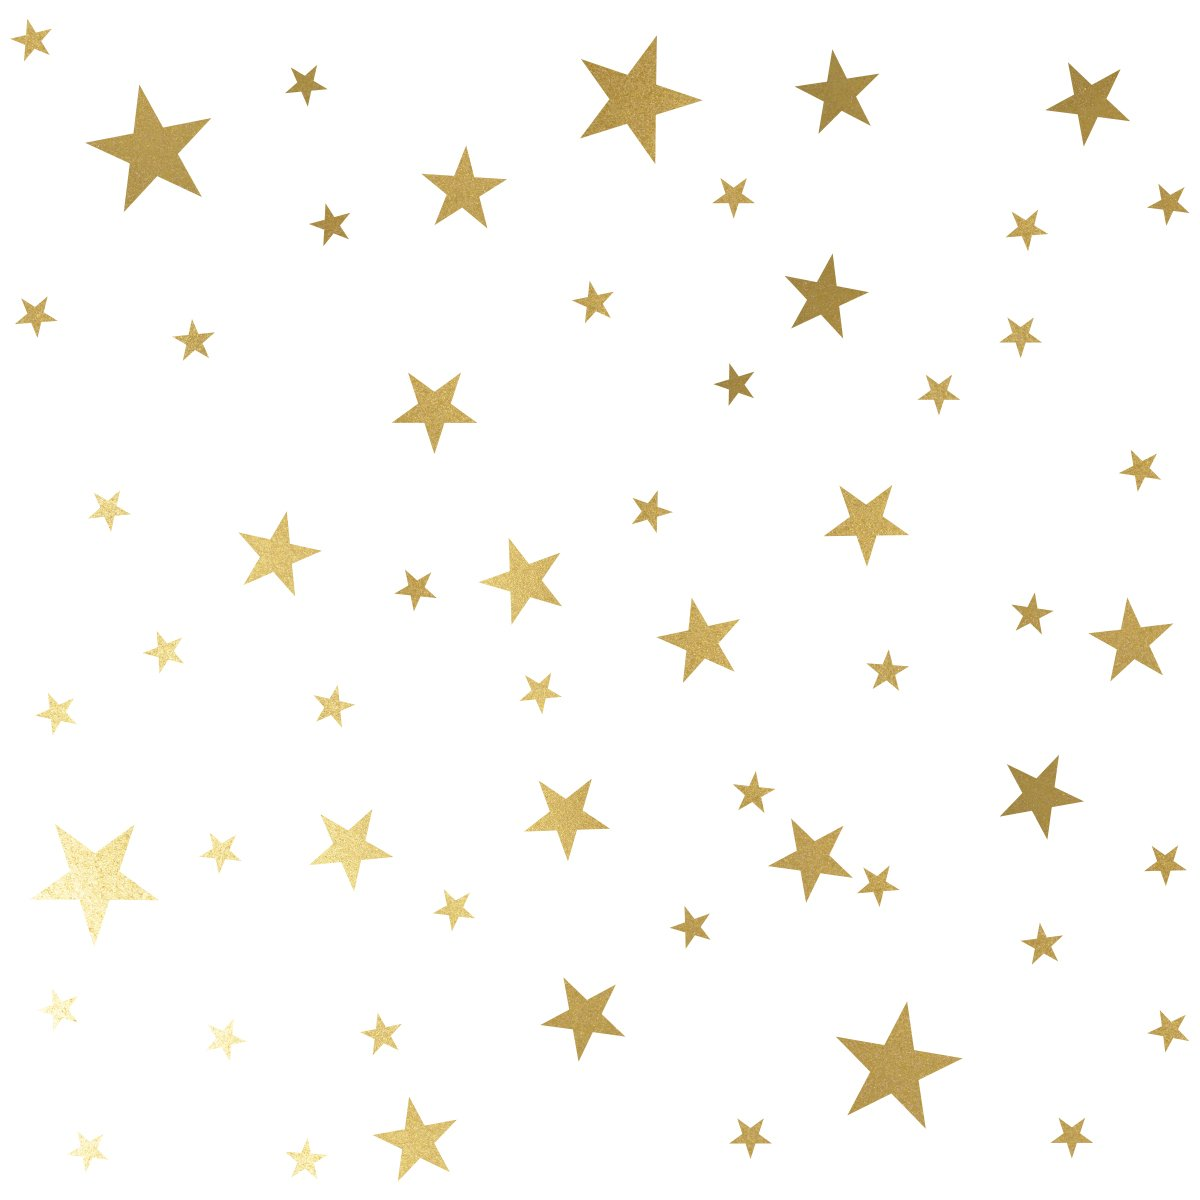 MozamyCreative Star Wall Decals (189 Count) Gold Star Decals Nursery Decals Removable Peel and Stick Wall Decals, Vintage Gold